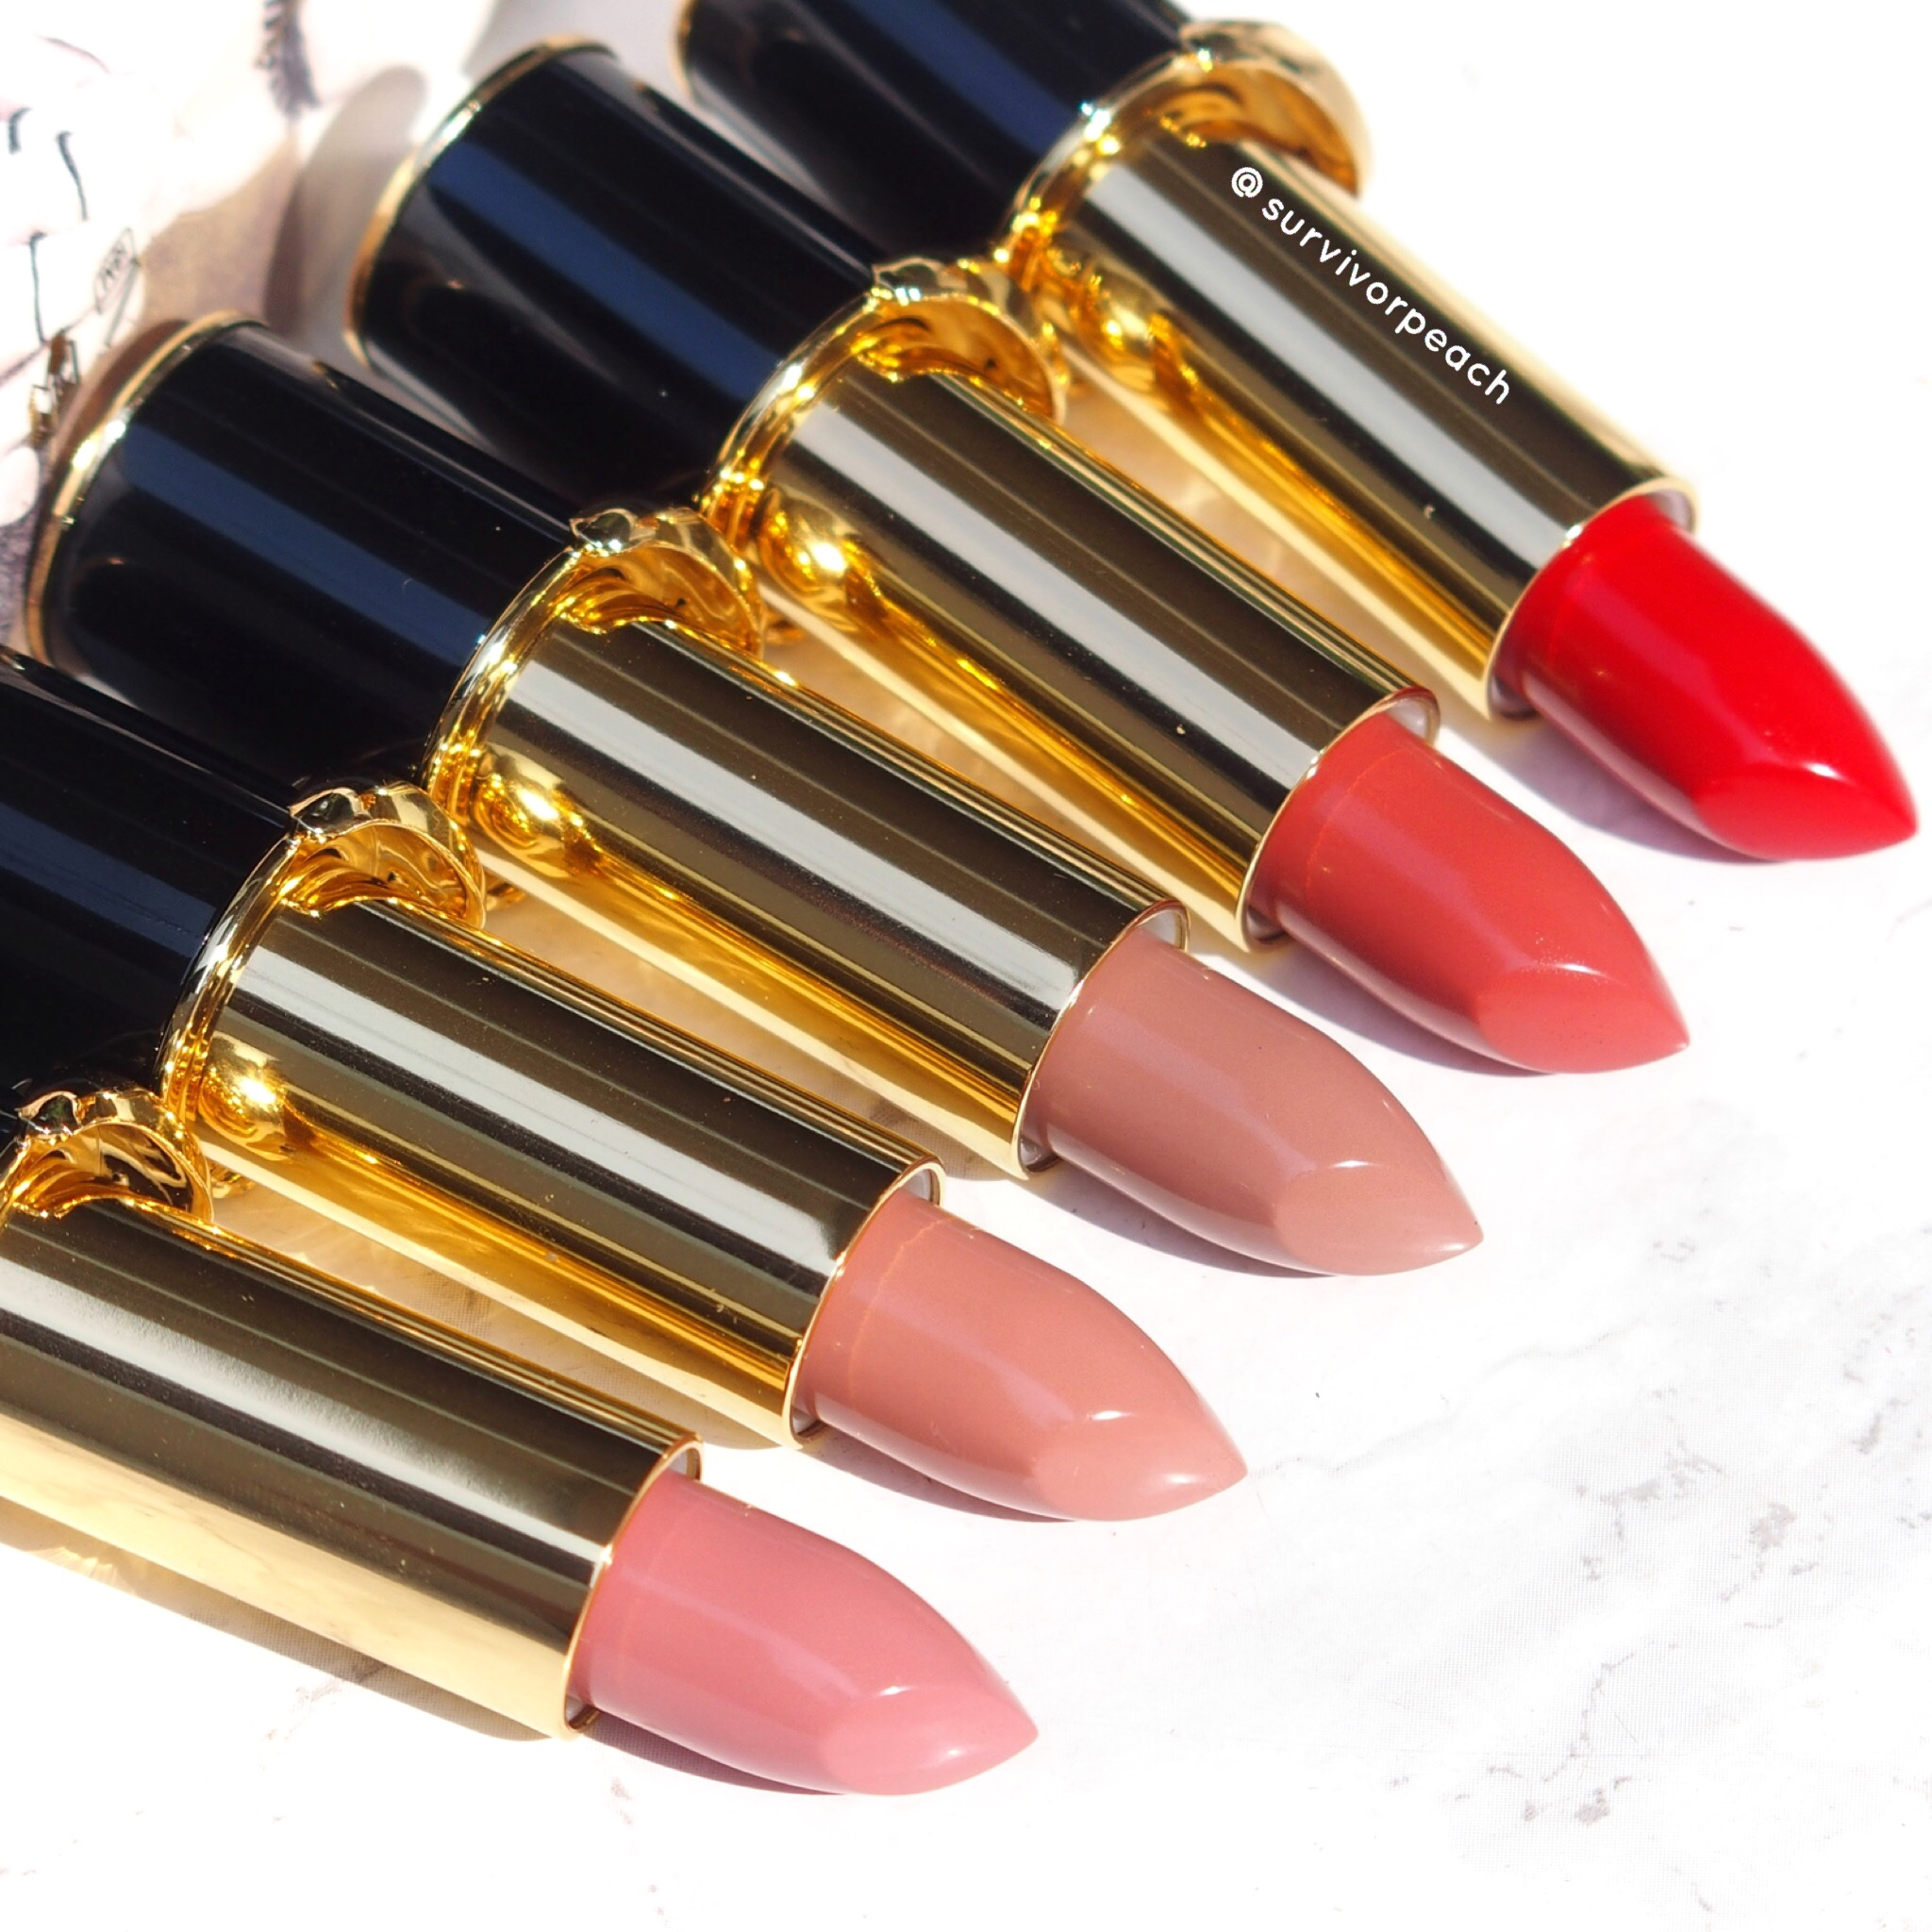 Pat McGrath Labs Luxe Trance Lipsticks in shades Donatella, Valetta, Sextrology, Tropicalia, and Mcgrath Muse